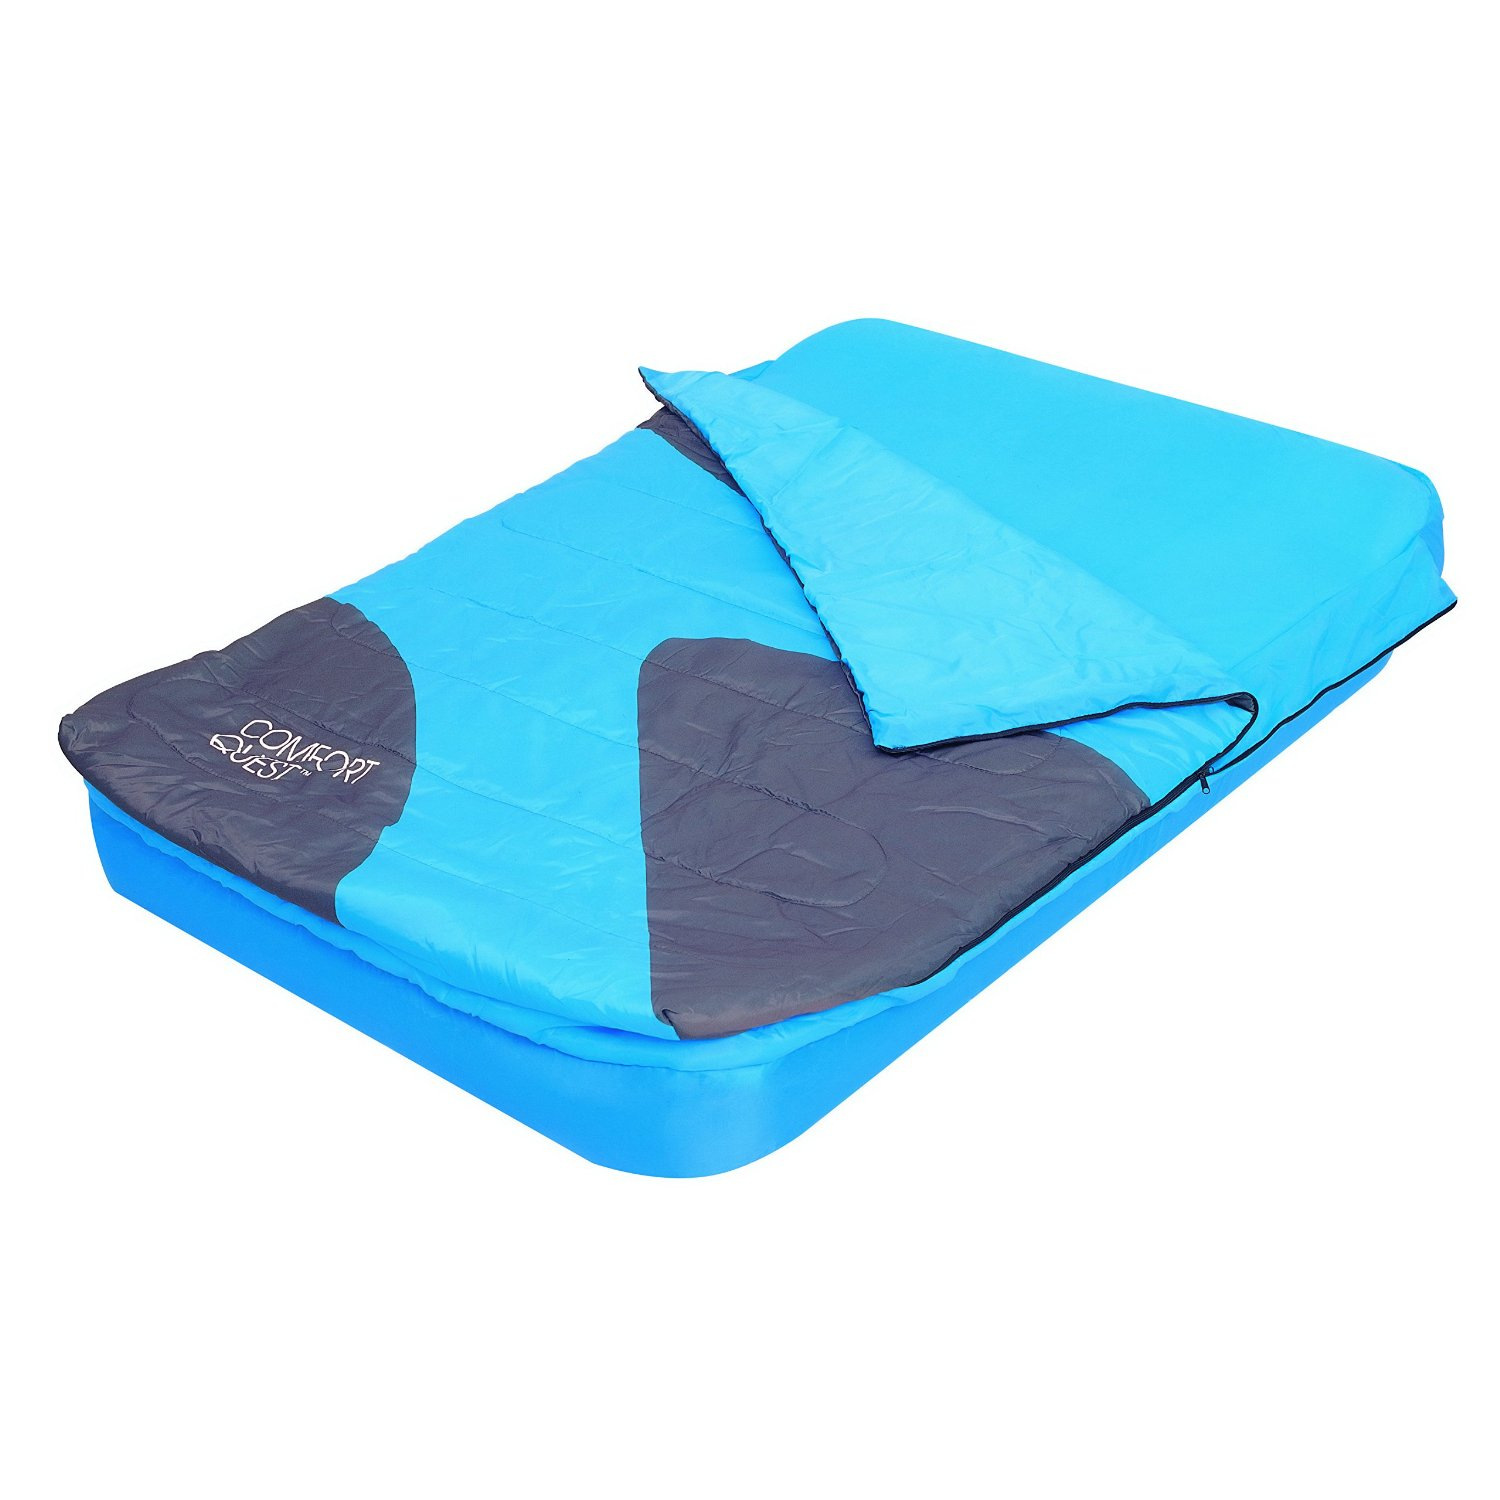 Aslepa double sleeping bag airbed inflatable camping air bed mattress